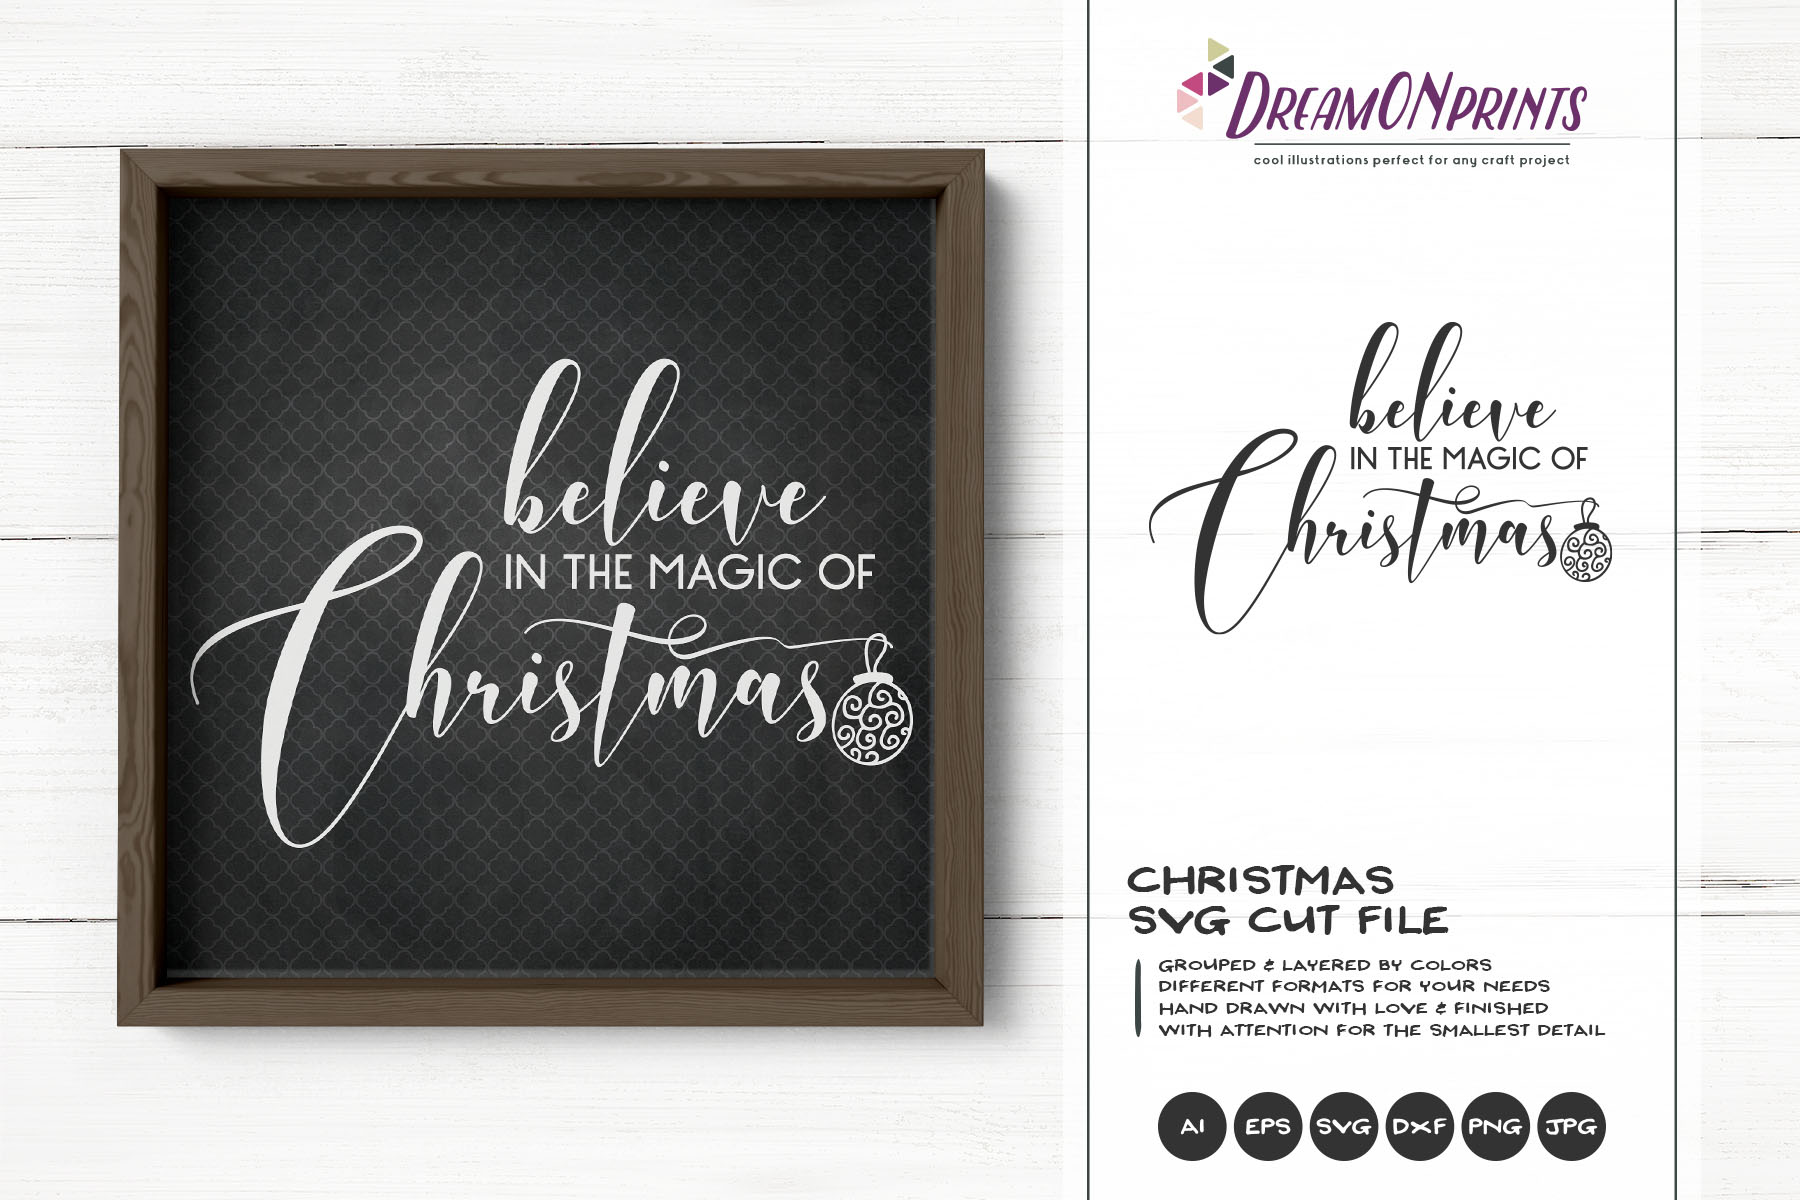 Believe in the Magic of Christmas SVG Cut File example image 1